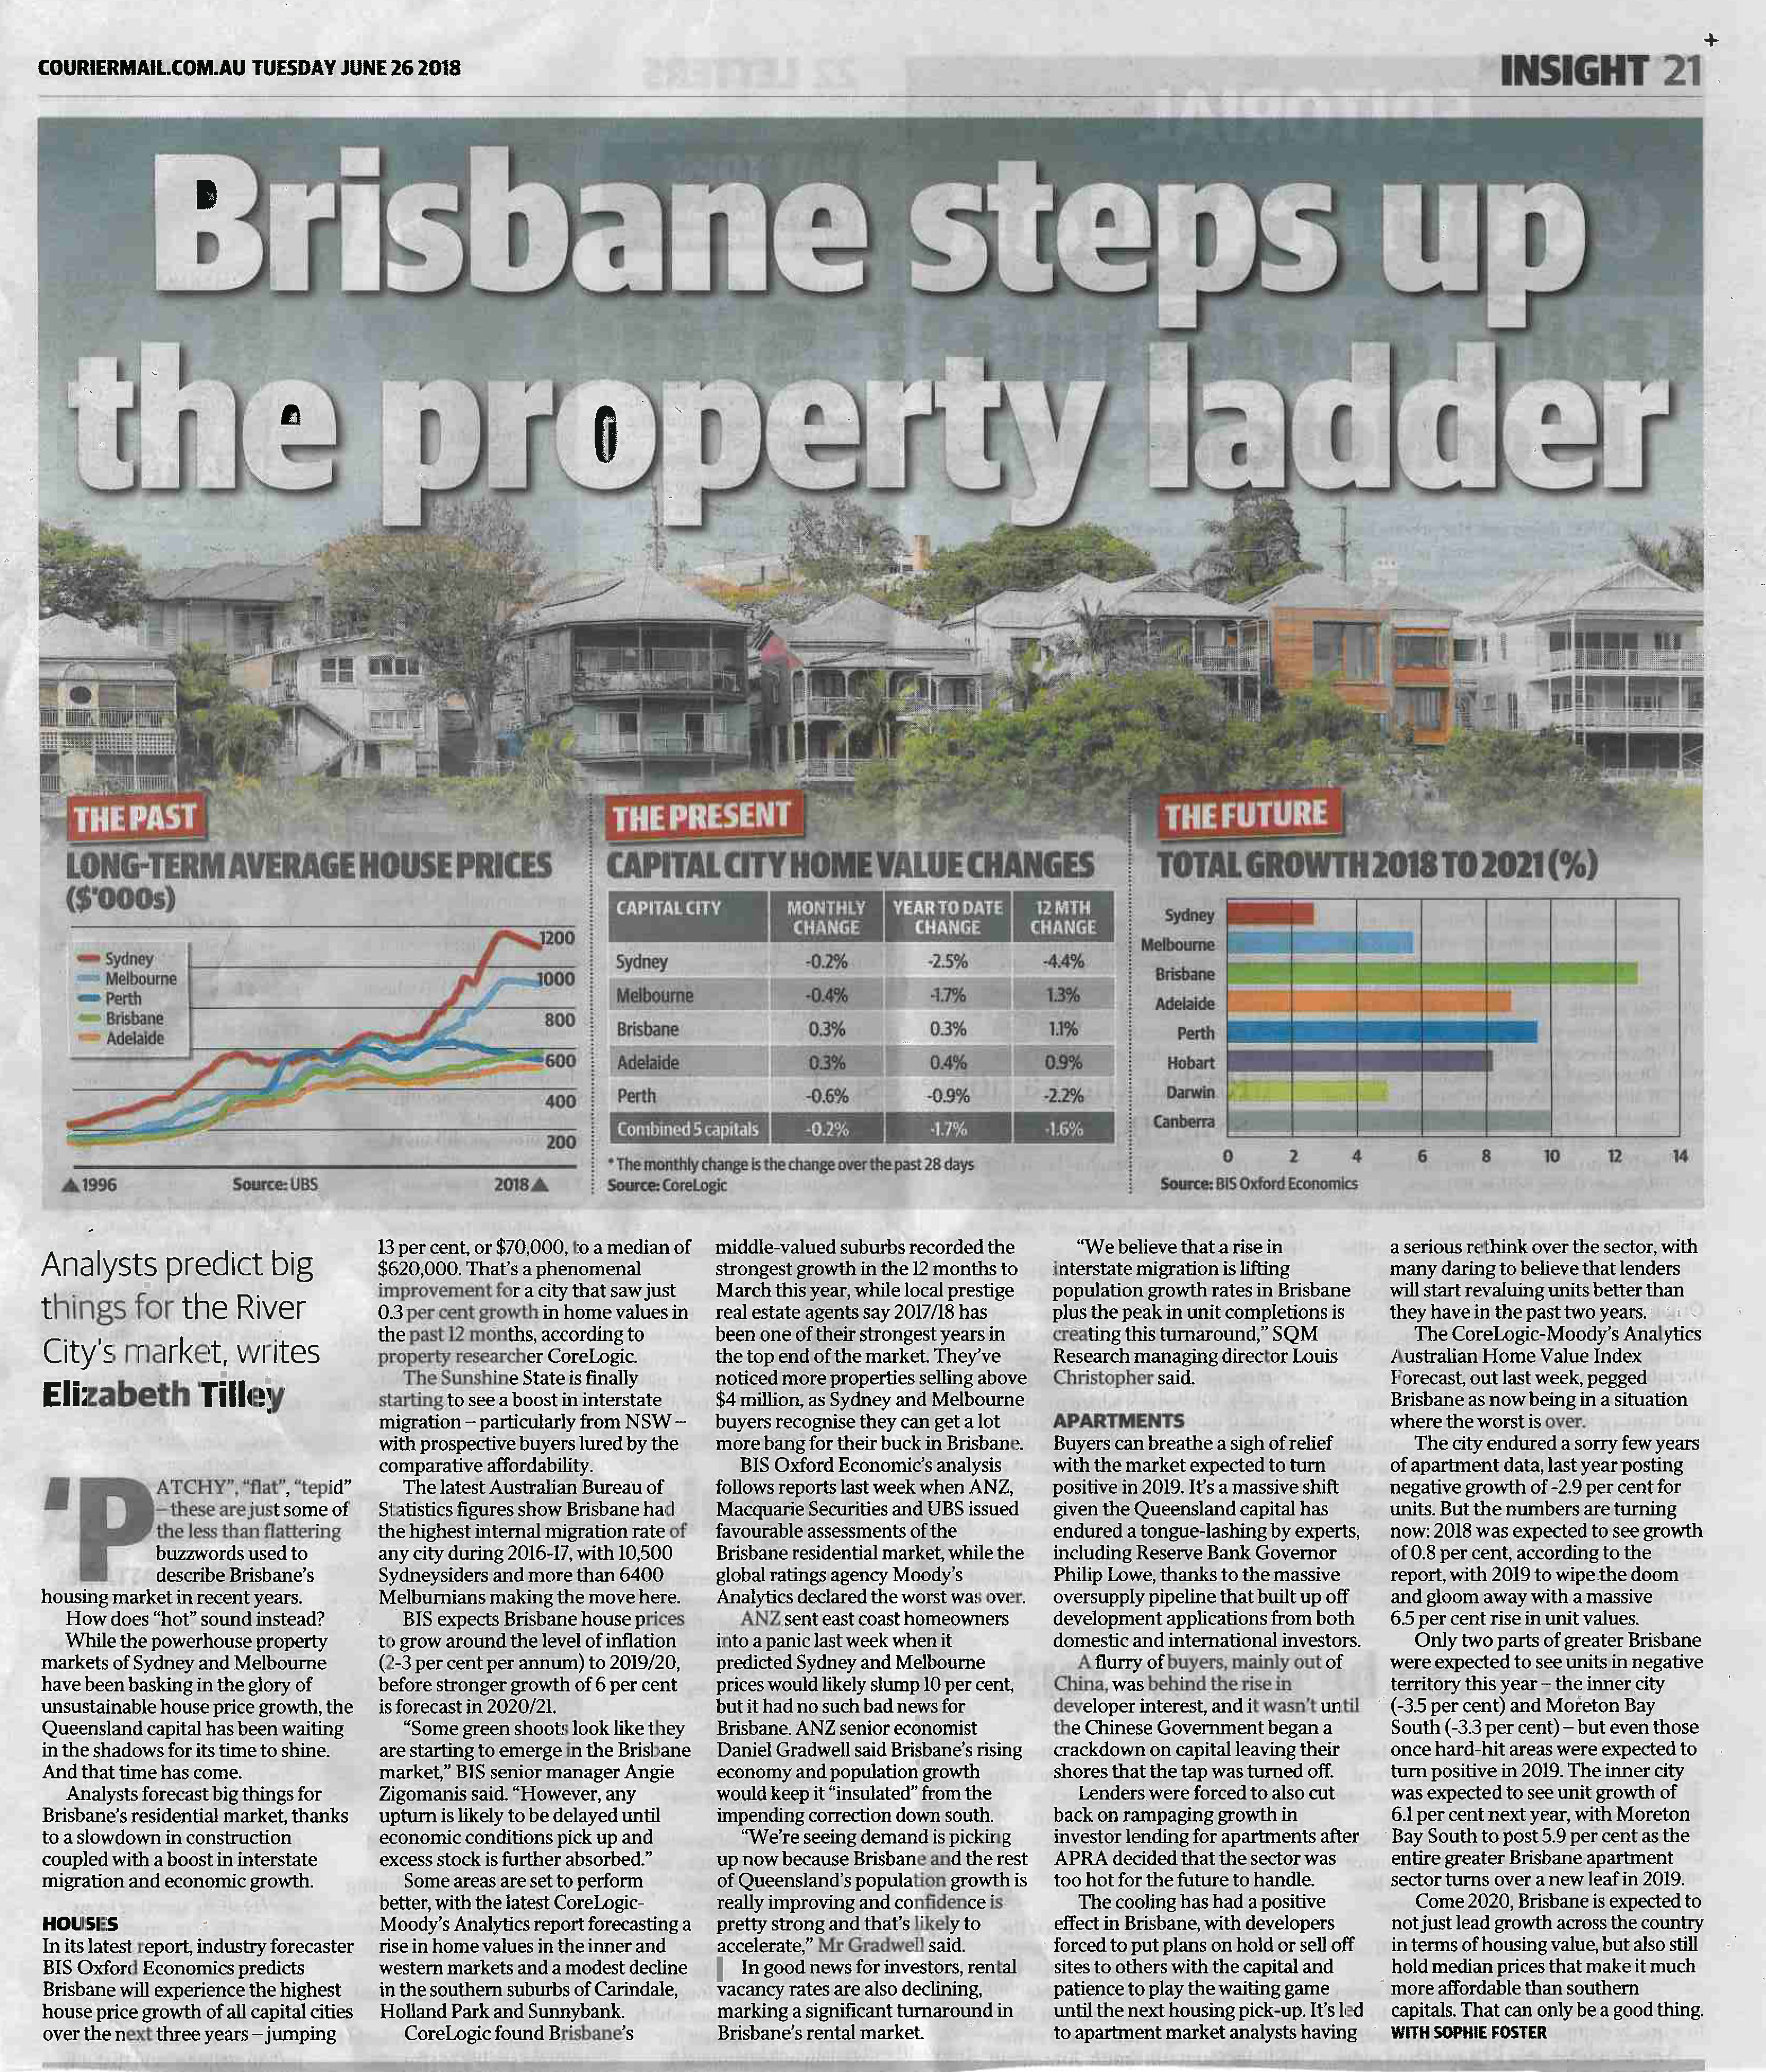 https://assets.boxdice.com.au/laguna/attachments/d7c/0f3/cm_260618_brisbane_steps_up_the_property_ladder.jpg?e63ea3cb2a56751e9aecd59f9698210e